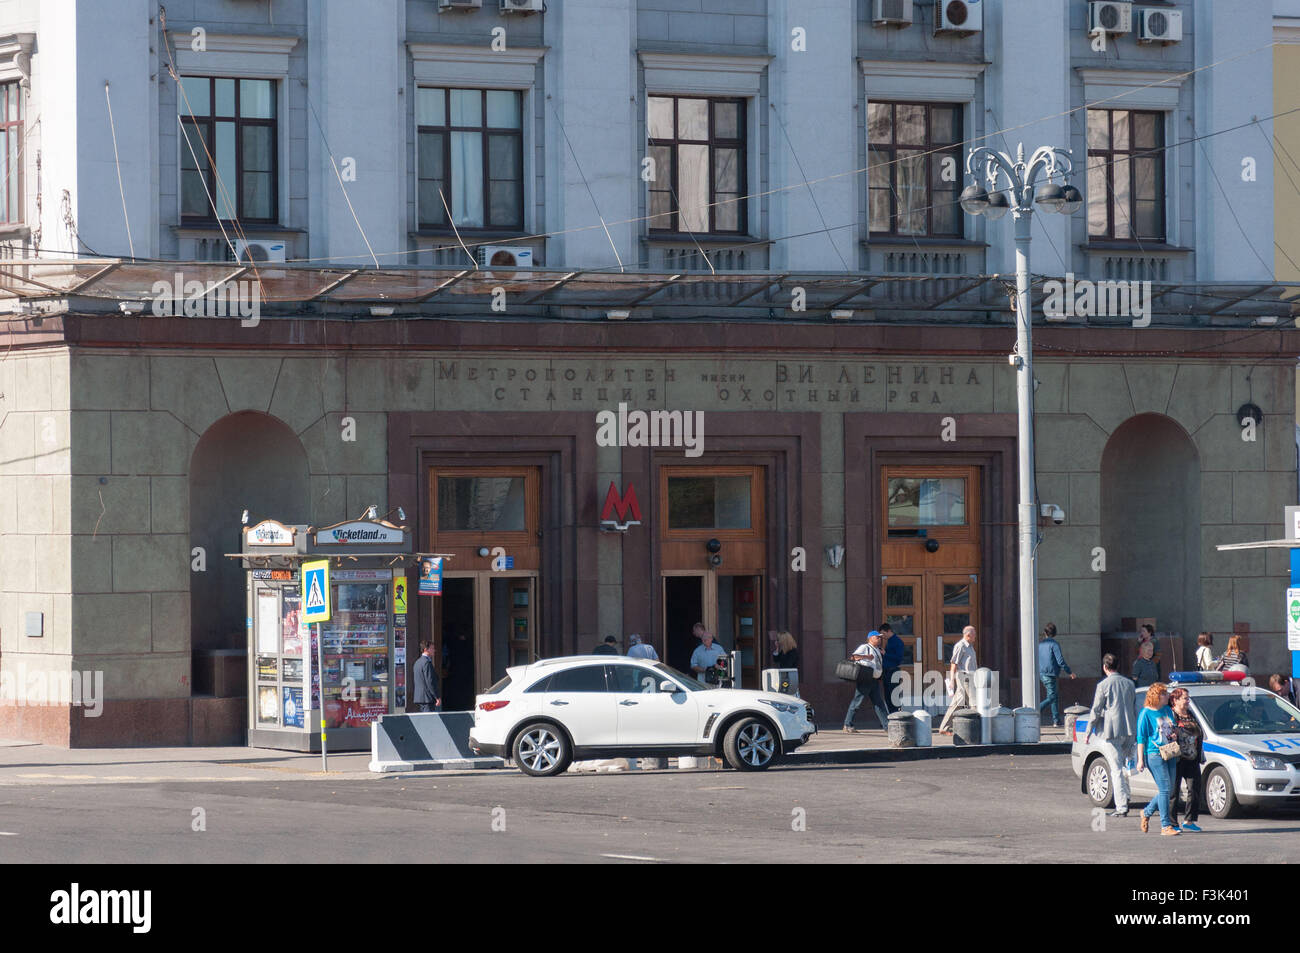 MOSCOW, RUSSIA - 21.09.2015. Entrance to the subway station Okhotny Ryad in Moscow city center Stock Photo